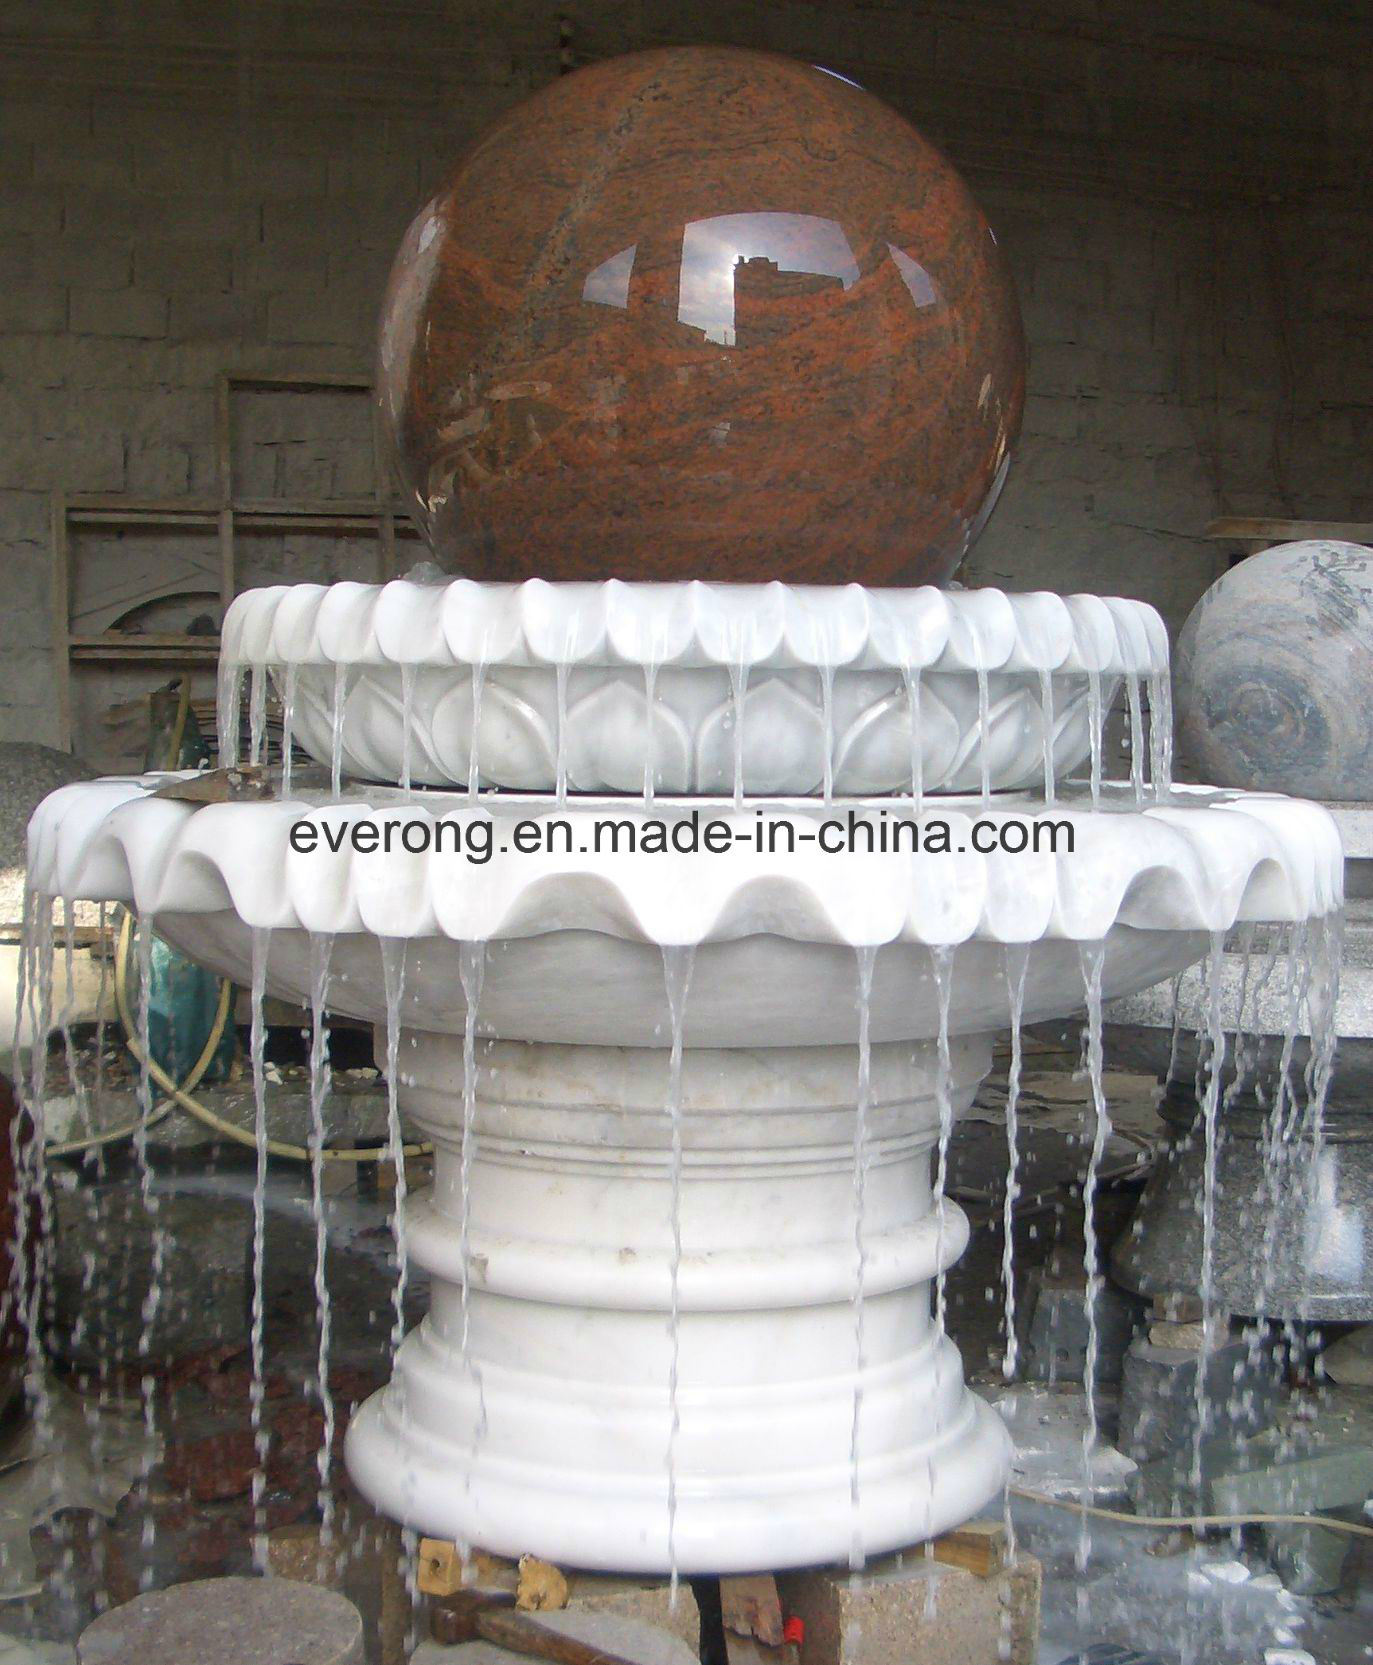 China Large Outdoor Granite Floating Sphere Ball Water Fountain For Garden Yard Plaza Stone